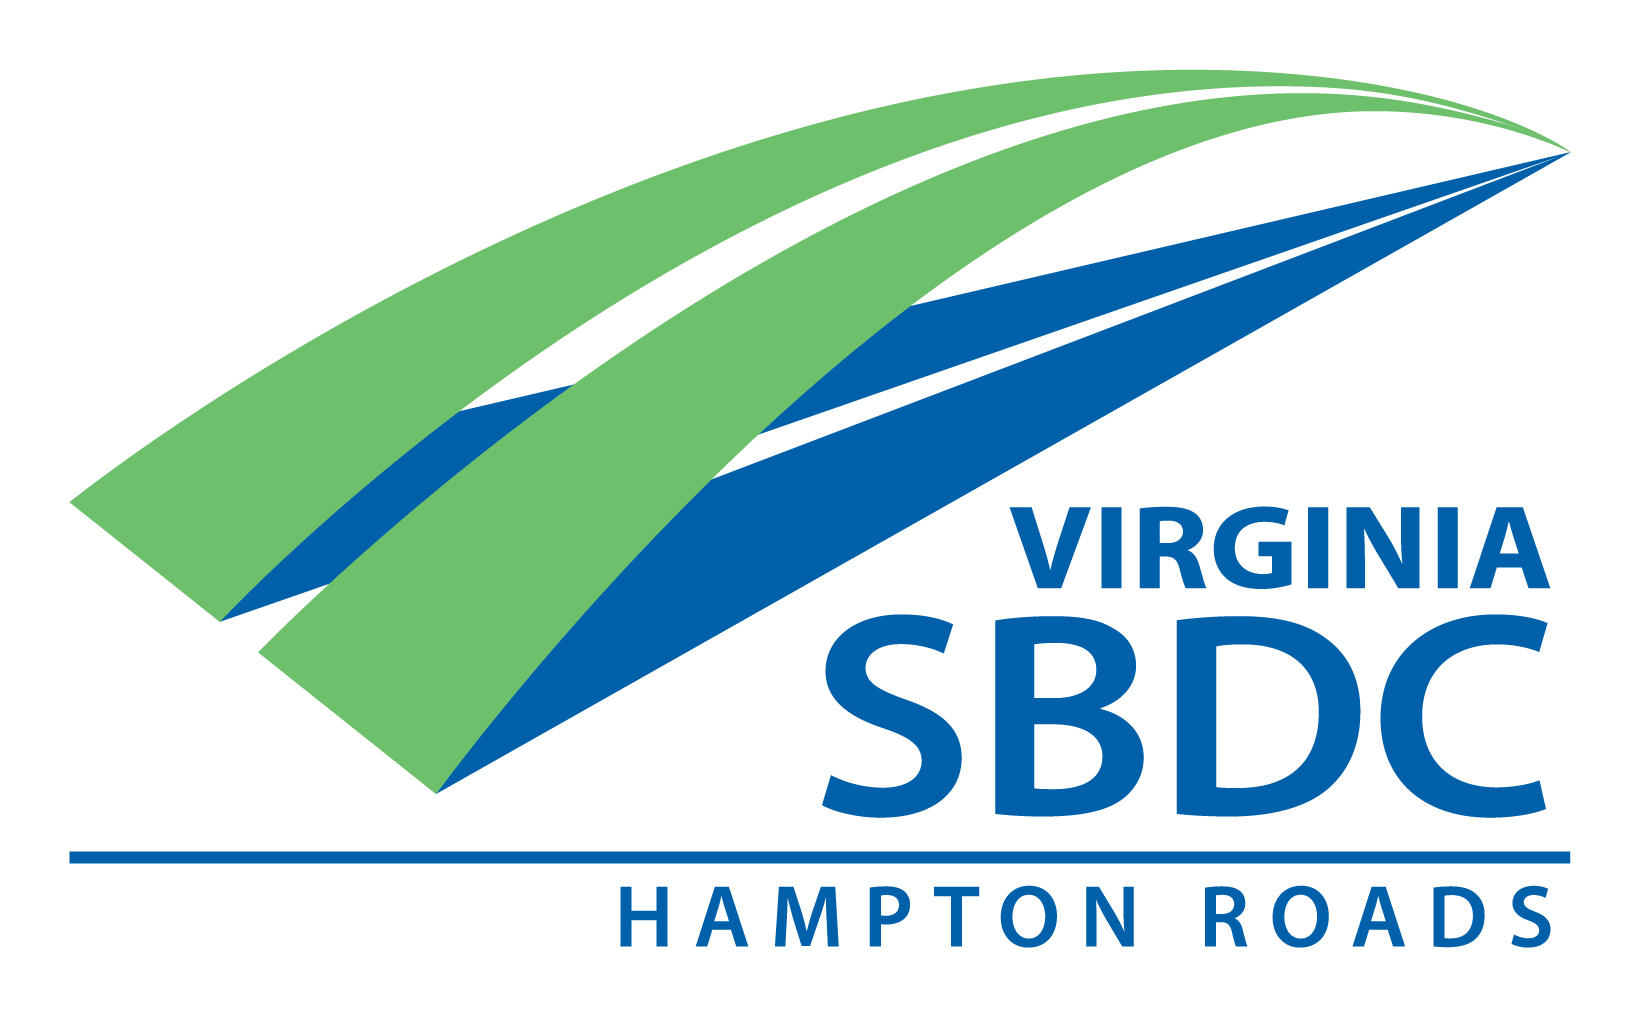 Virginia Small Business Development Center of Hampton Roads